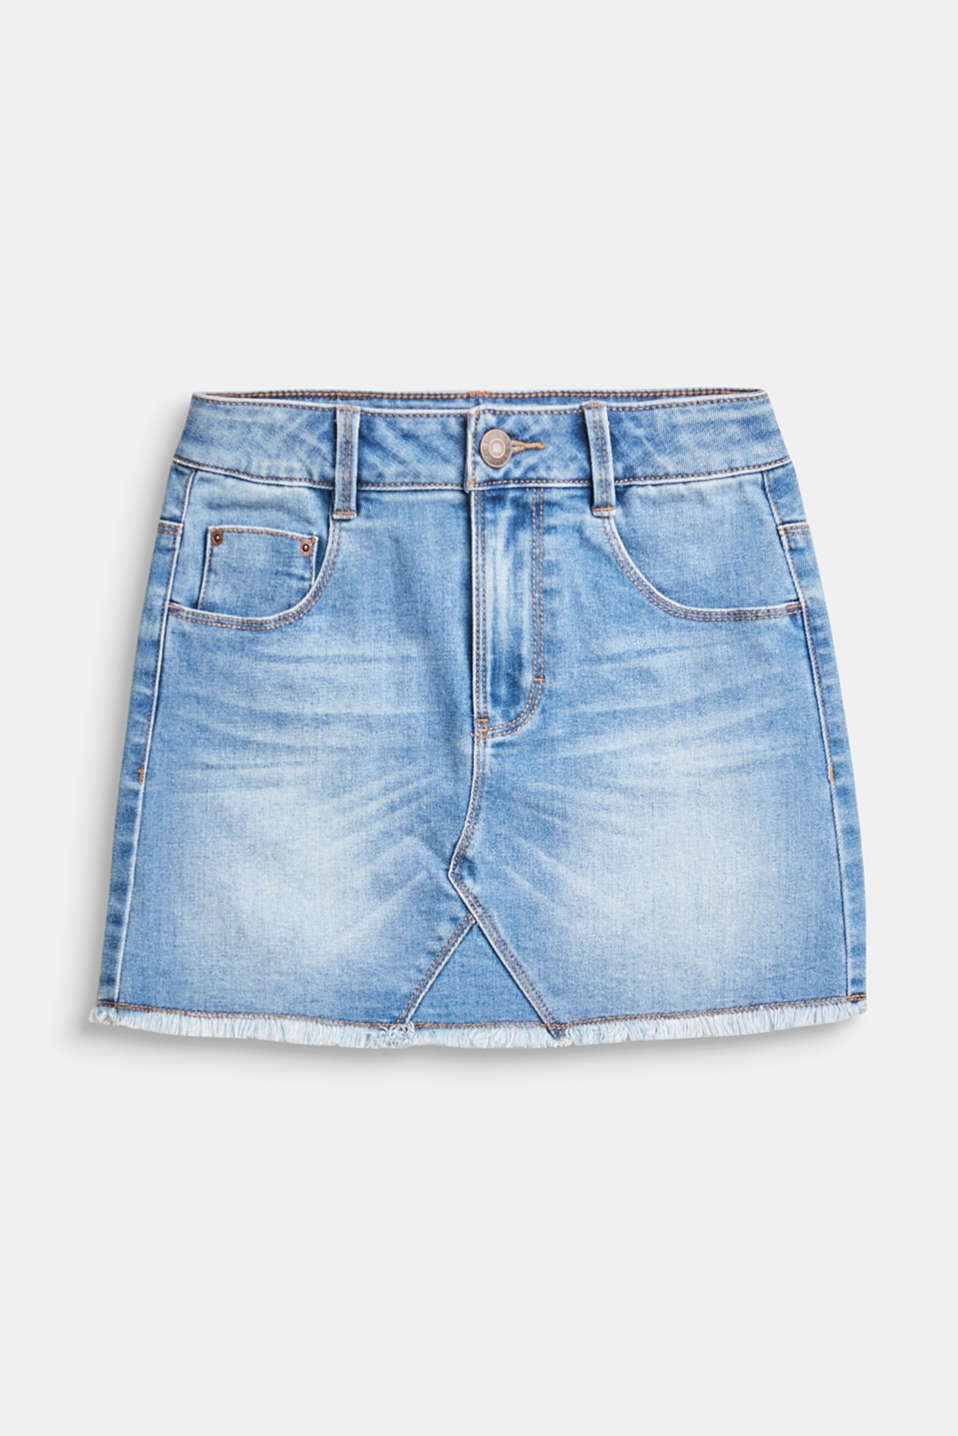 We love denim! The mini skirt impresses with the vintage garment wash and frayed hem.